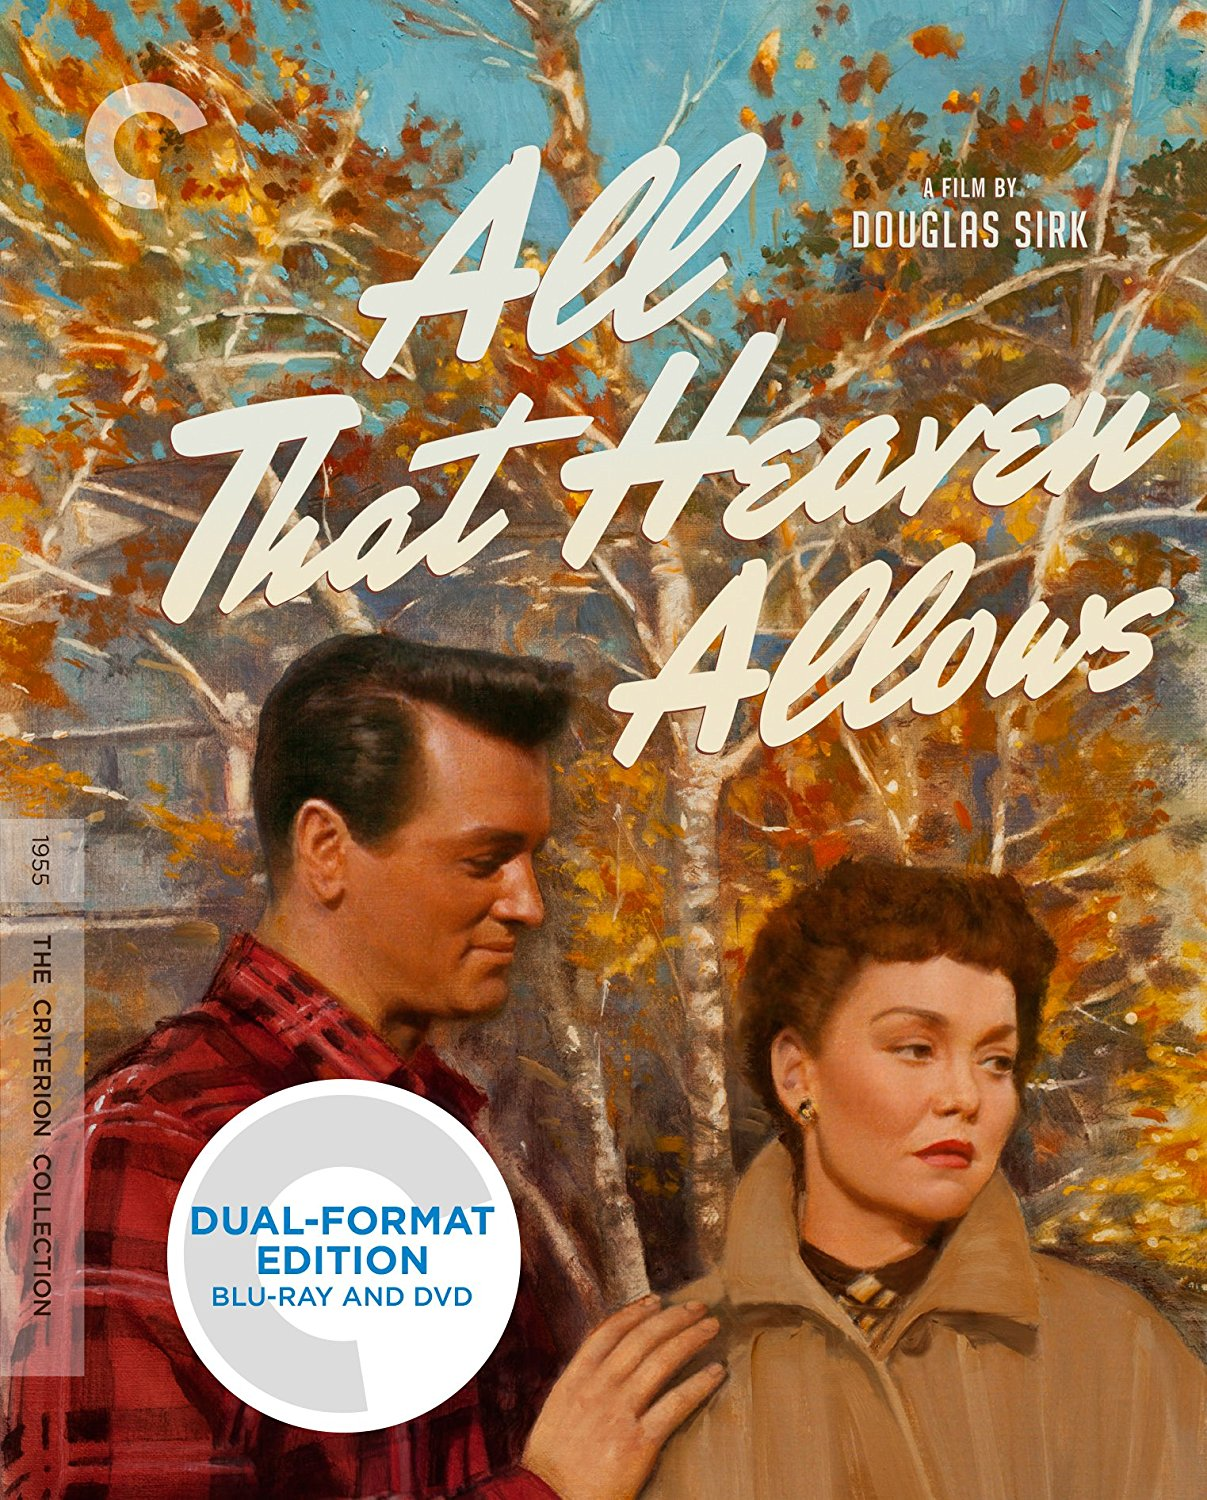 All That Heaven Allows (19) starring Rock Hudson, Jane Wyman, Hayden Rourke